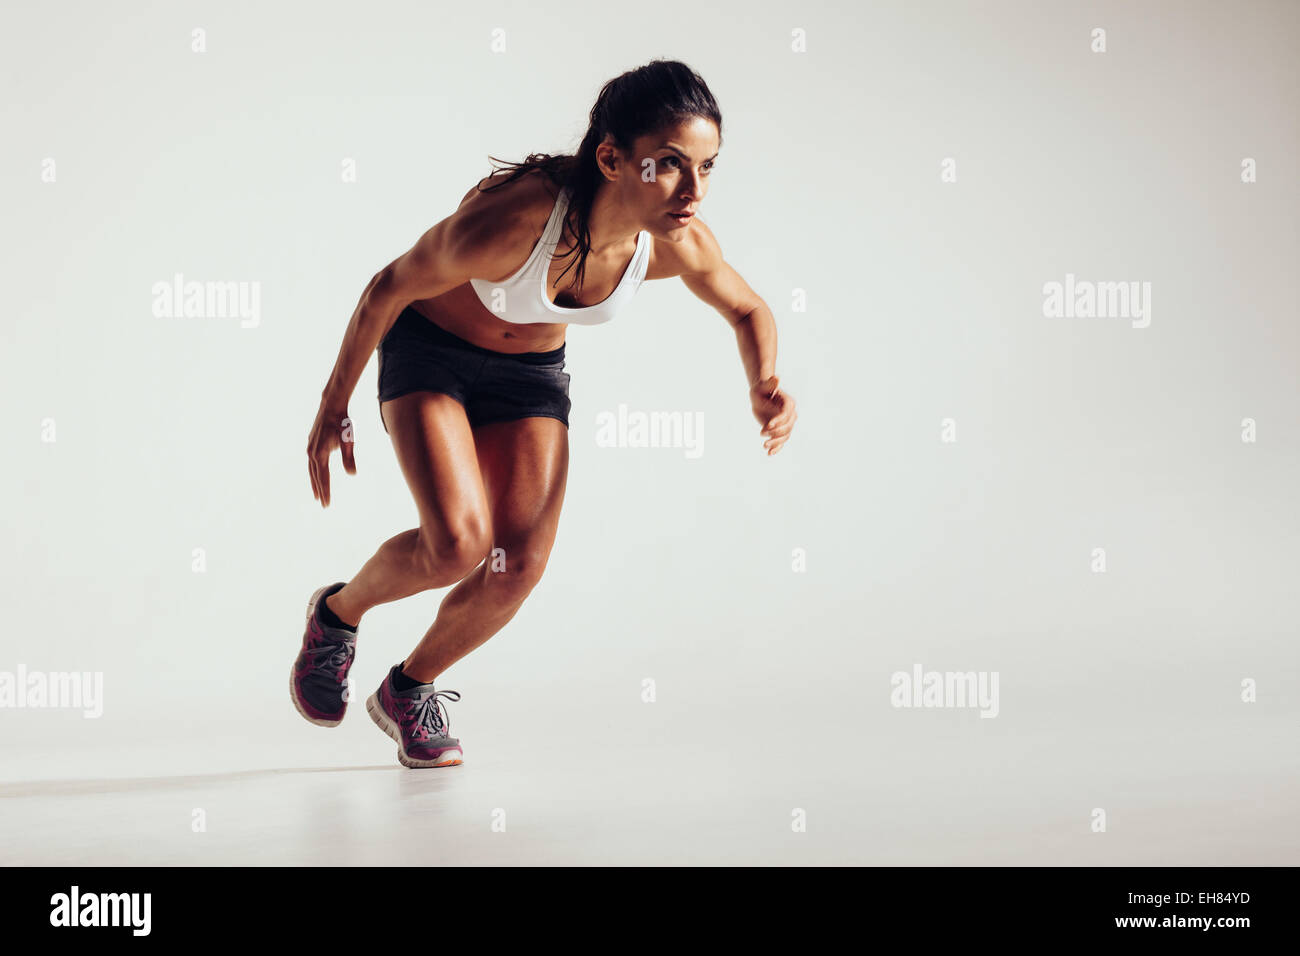 Young woman starting to run and accelerating over grey background. Powerful young female athlete running in competition. - Stock Image